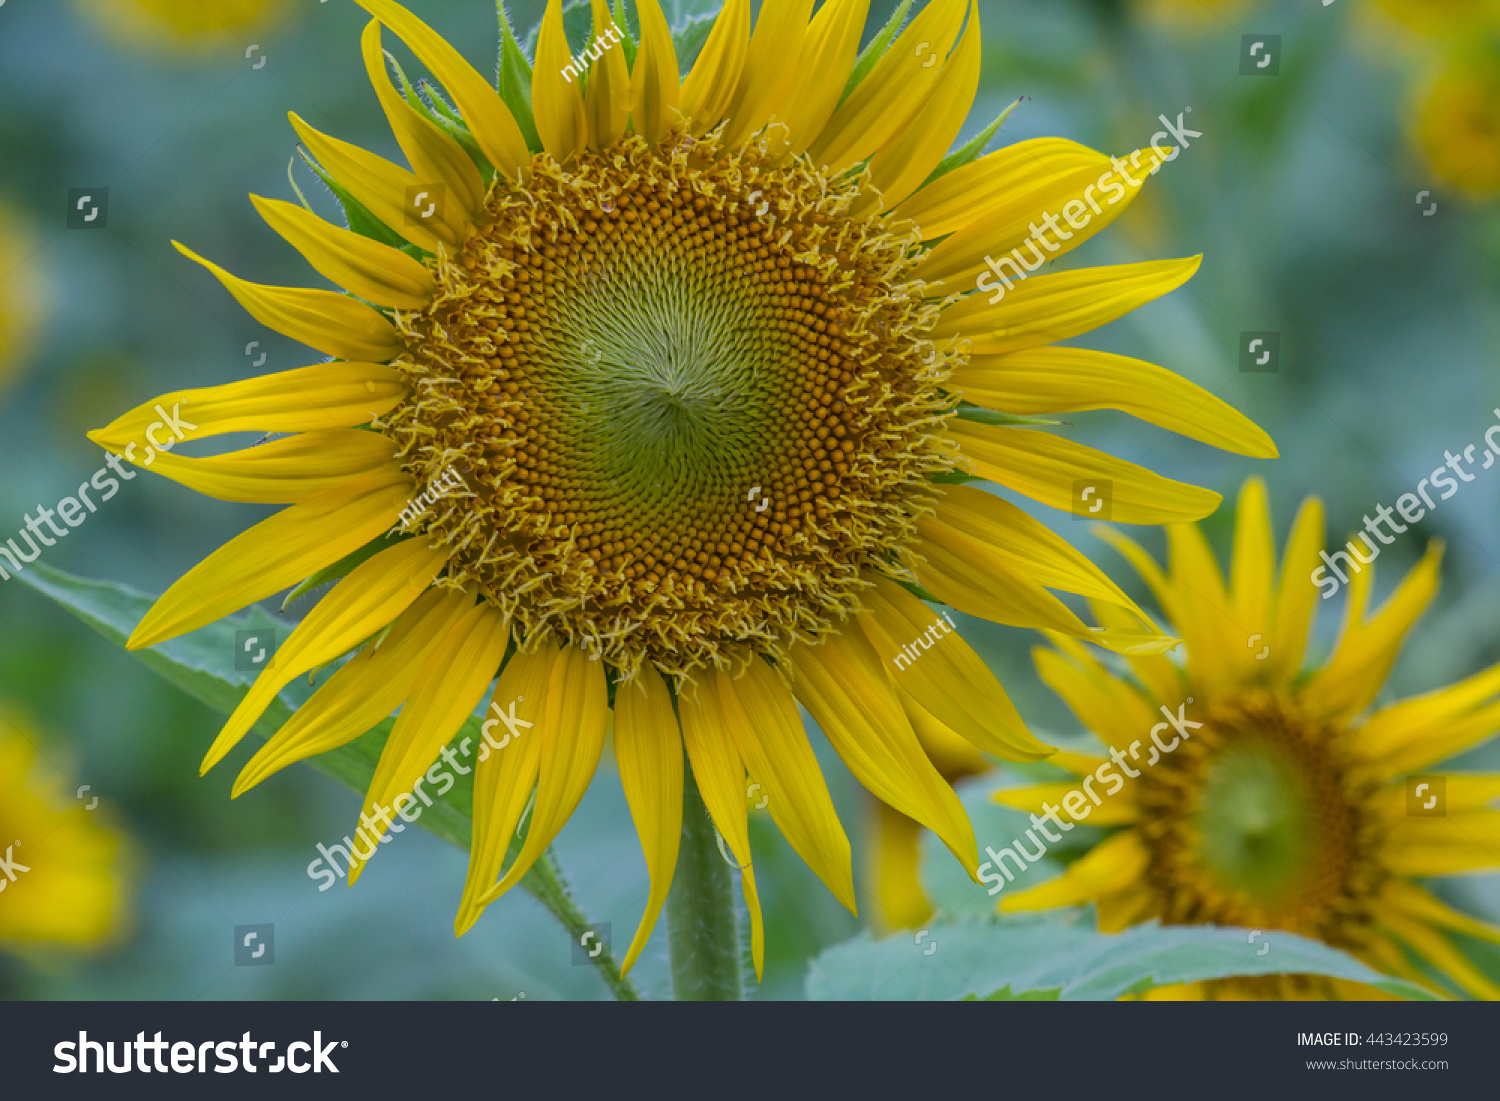 Beautiful Sunflowers Blooming In The Garden Close Up Focus Sharp